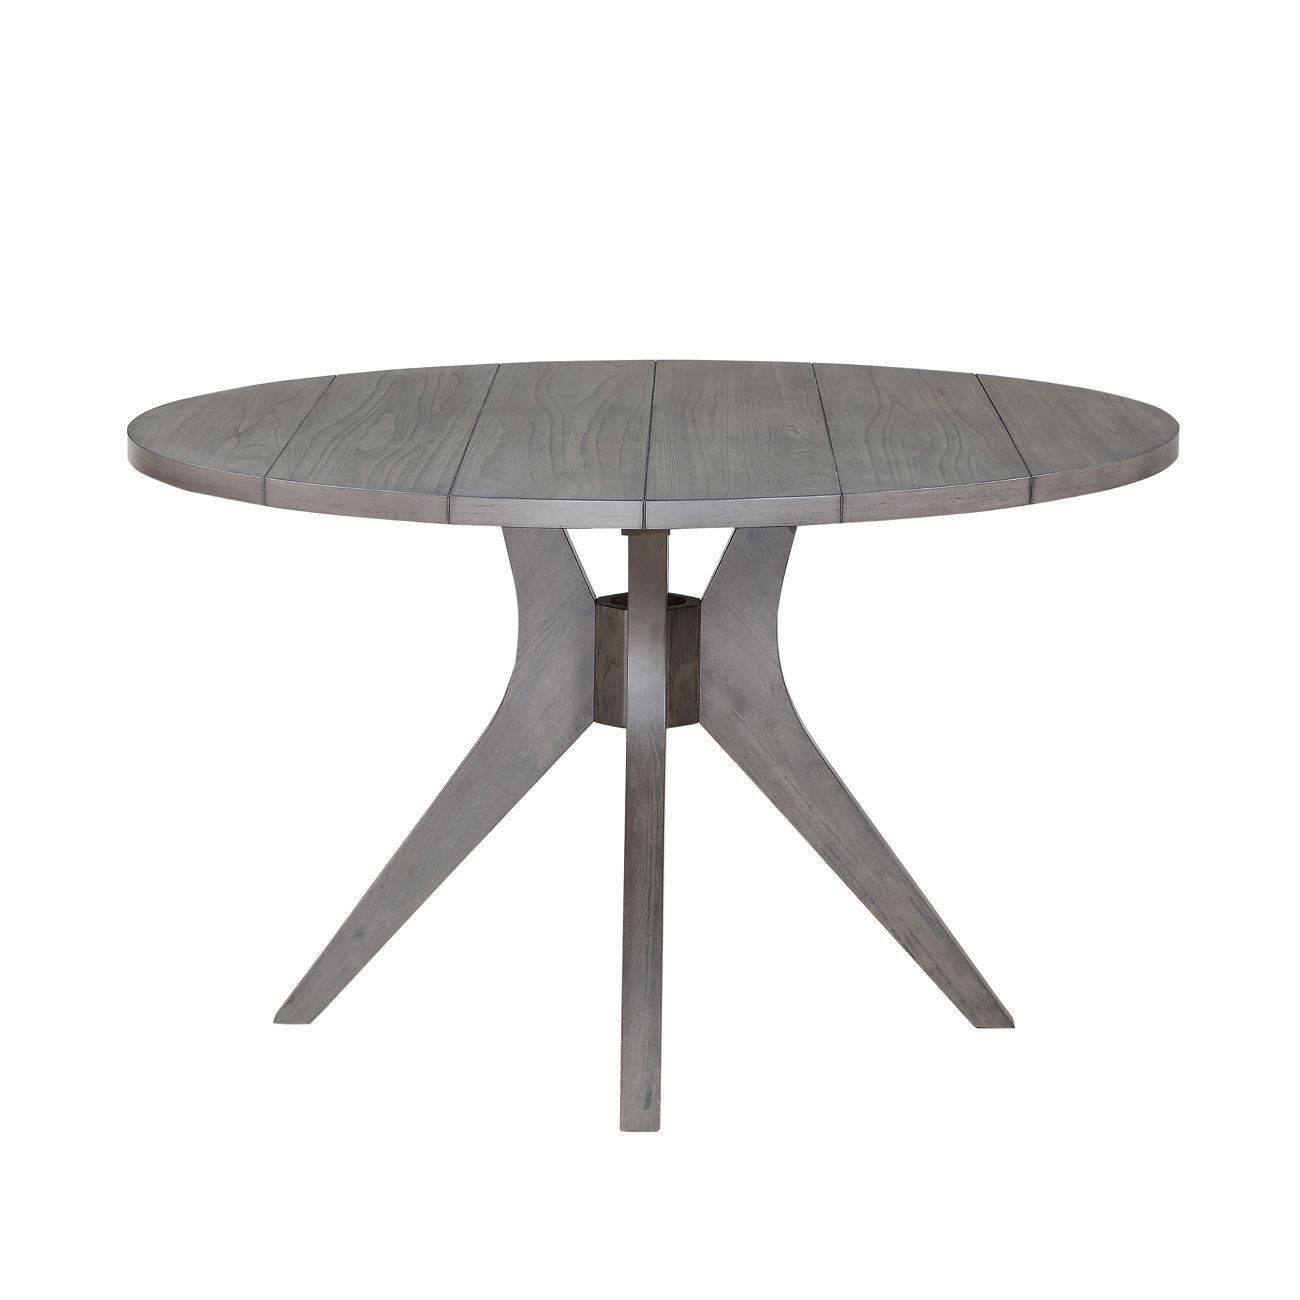 Dining Room : Scenic Grey Circular Dining Table Appealing Pertaining To 2018 Brooks Round Dining Tables (View 24 of 25)